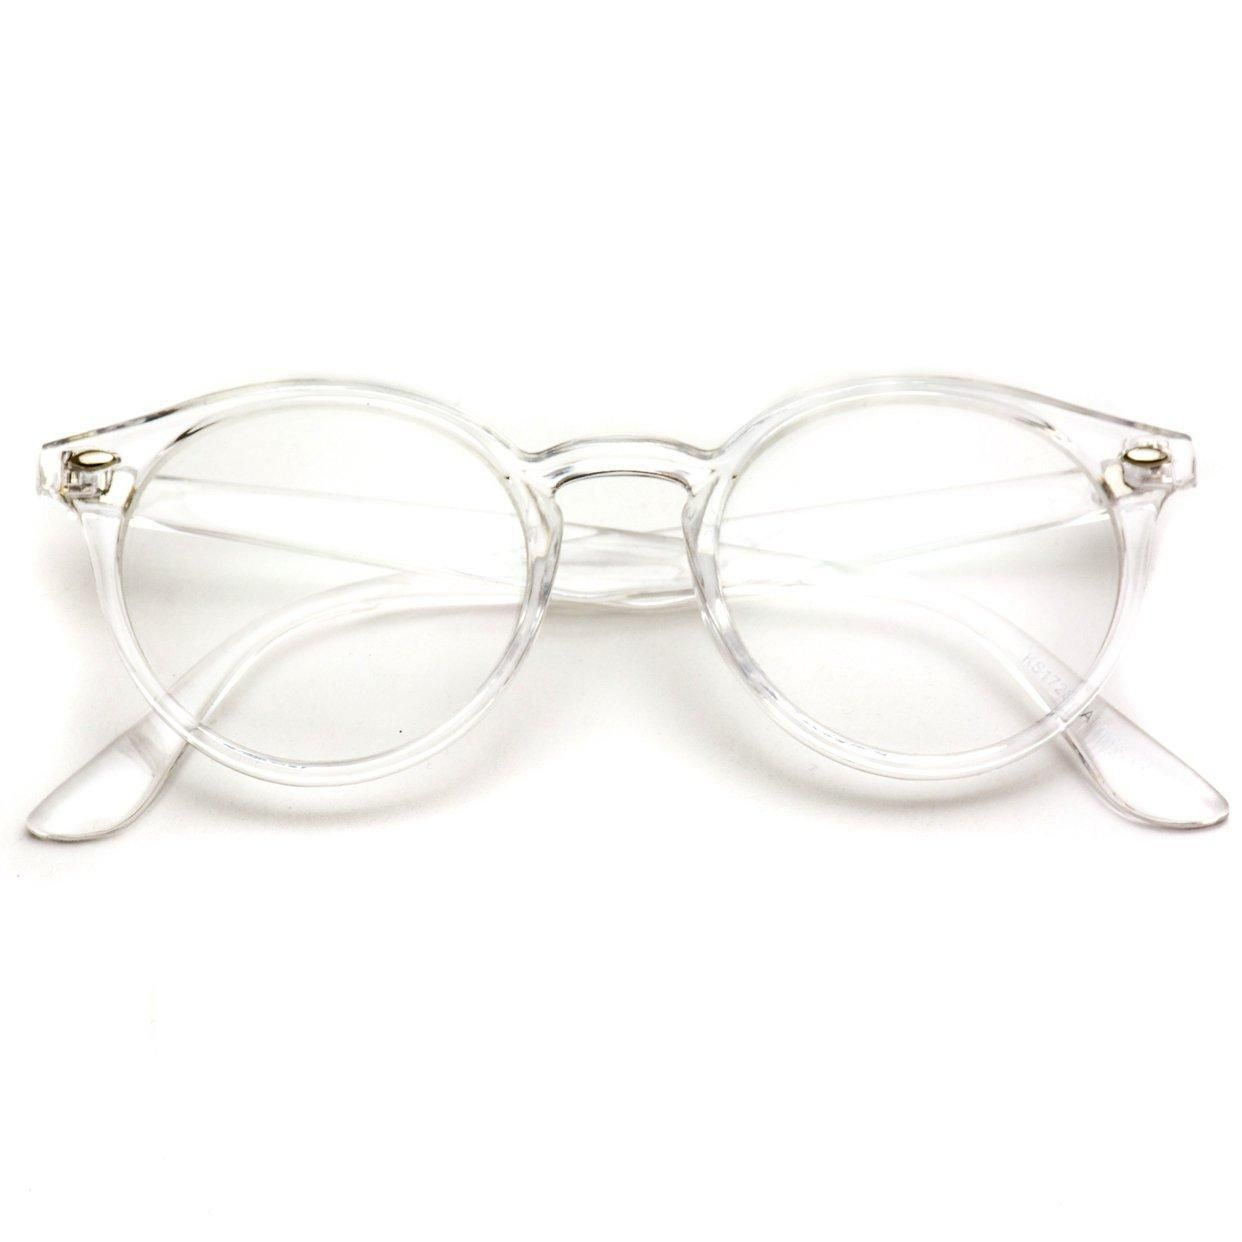 Ainsley Transparent Round Clear Frame Glasses - Clear Optical ... b87b38c59